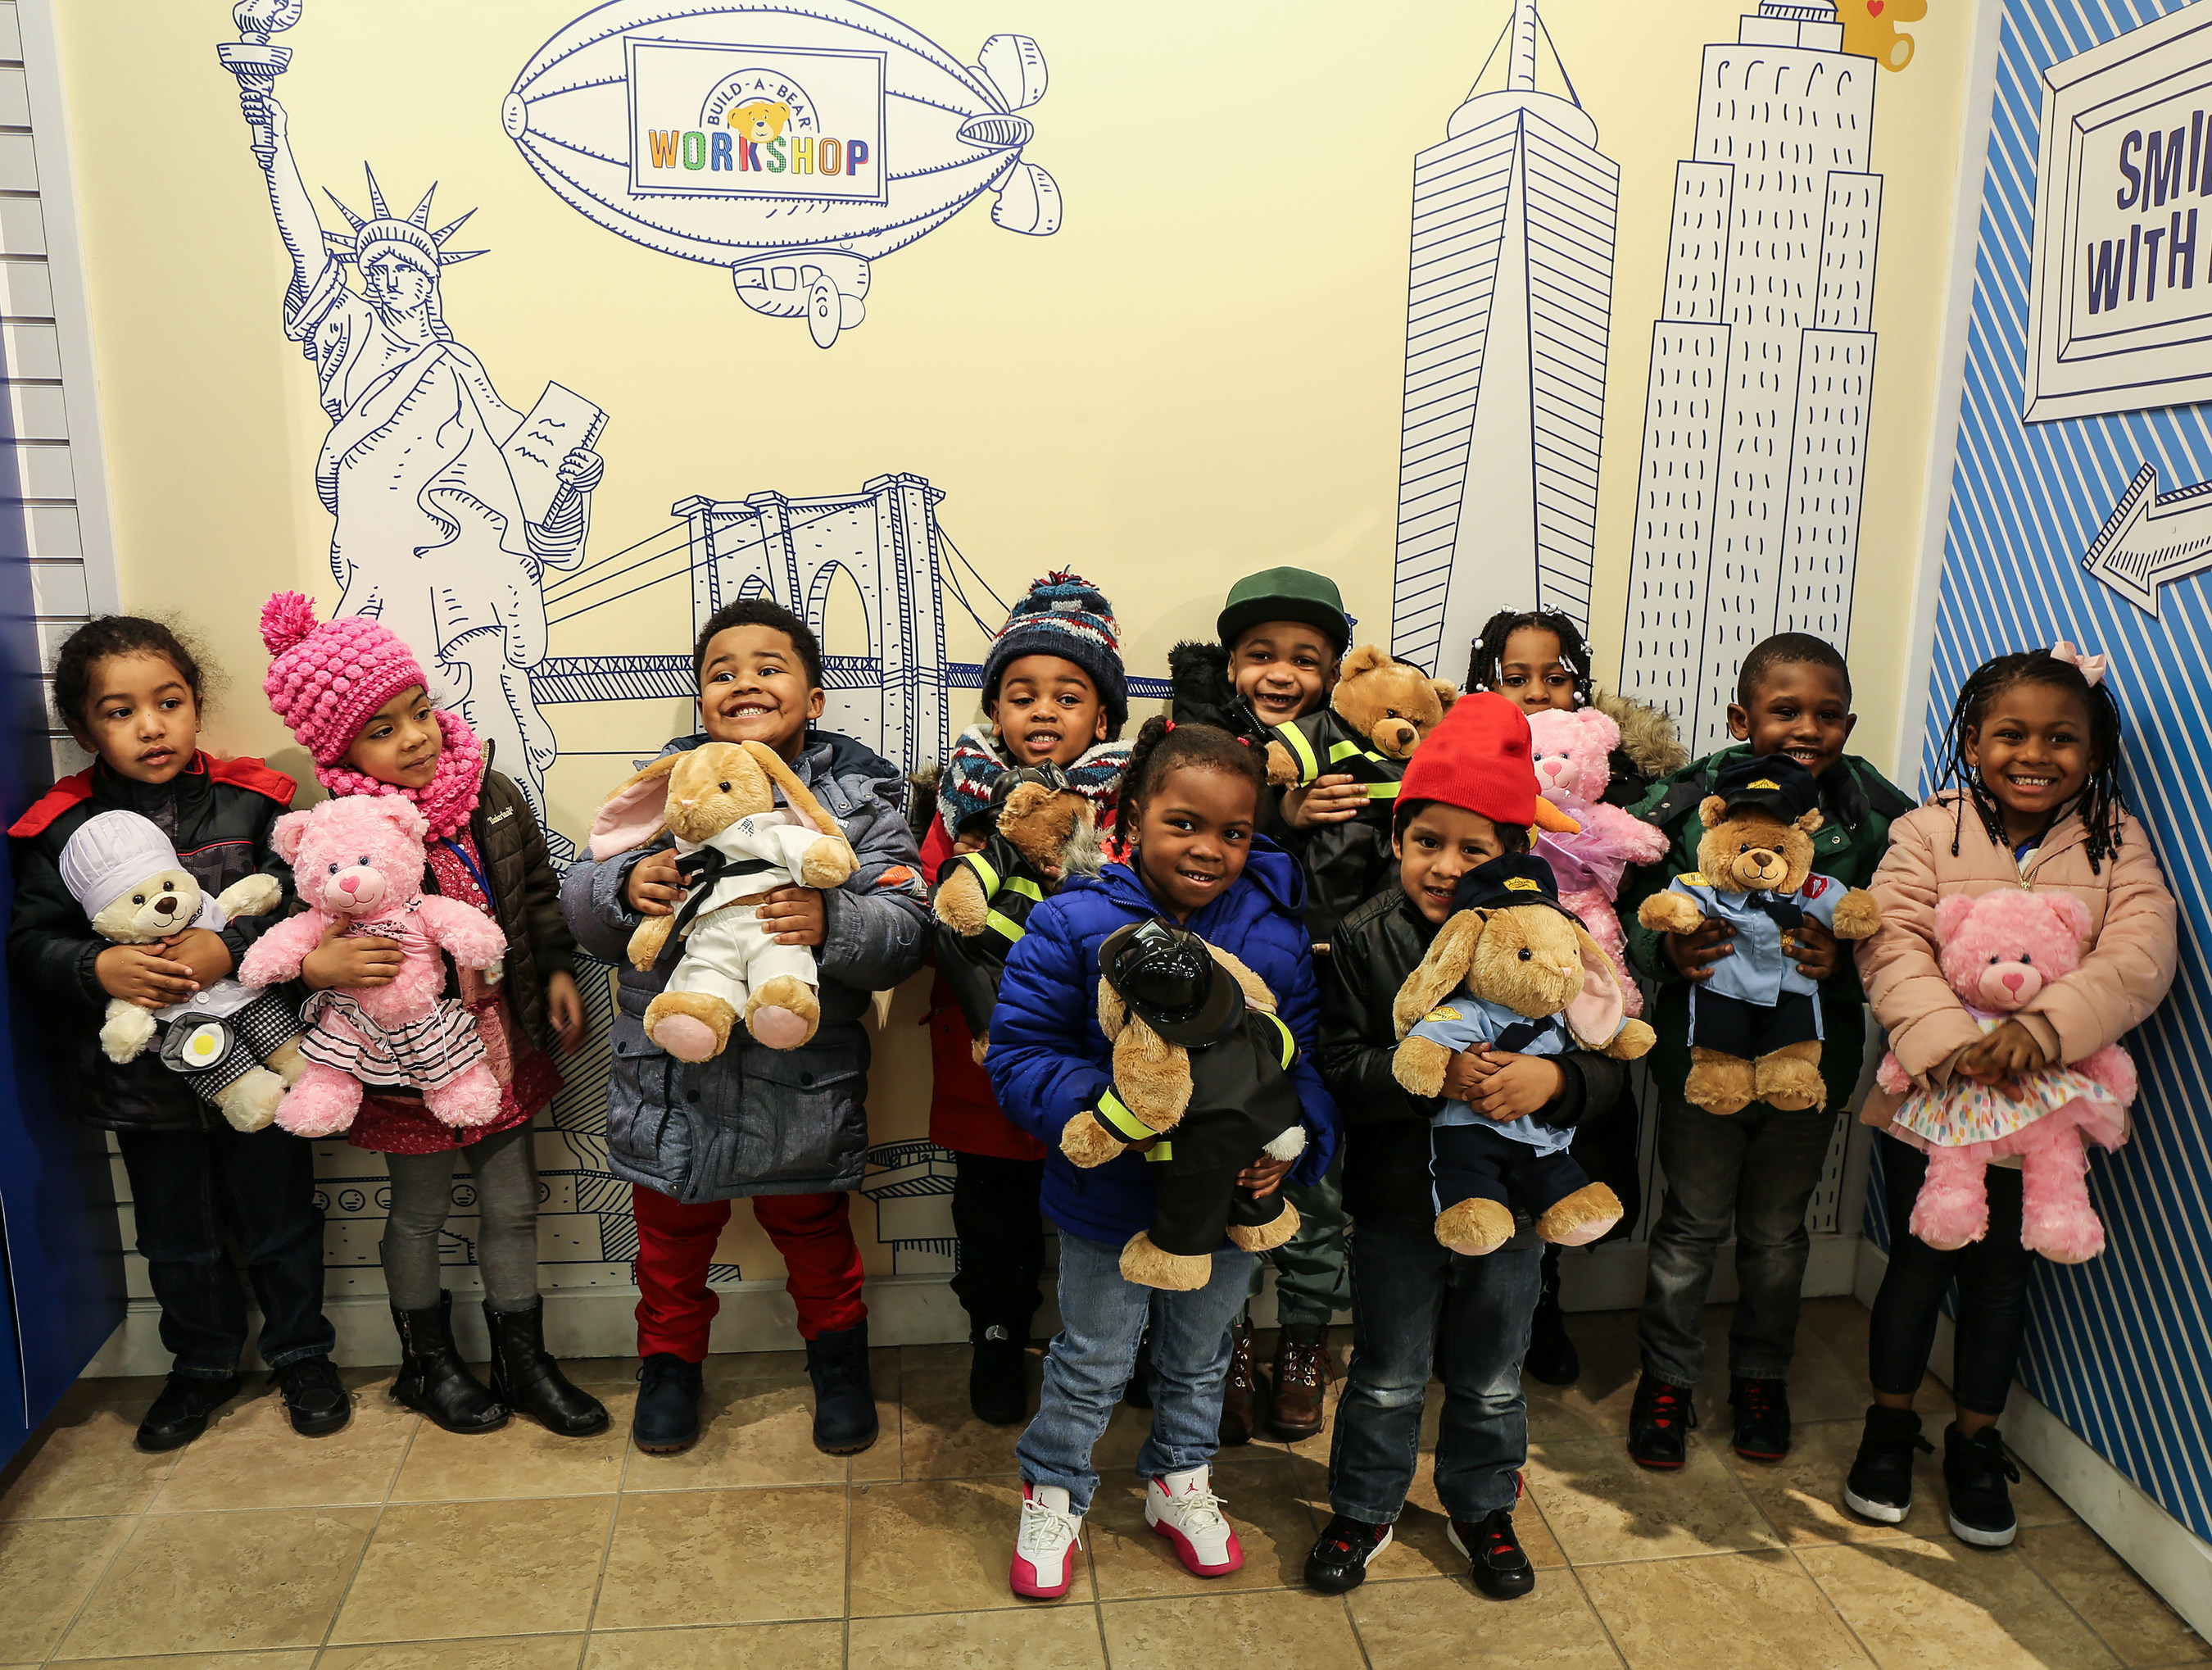 As part of Save the Children's Journey of Hope program, 25 children from Sheltering Arms Children and Family Services joined Save the Children at the Build-A-Bear Workshop Empire State Building store in New York City to celebrate the culmination of the Share Your Heart cause campaign. The Build-A-Bear Foundation matched $100,000 of guest donations to raise more than $300,000 for Save the Children's program benefitting children in need in the United States, Canada and the United Kingdom.  Photo courtesy of Save the Children.